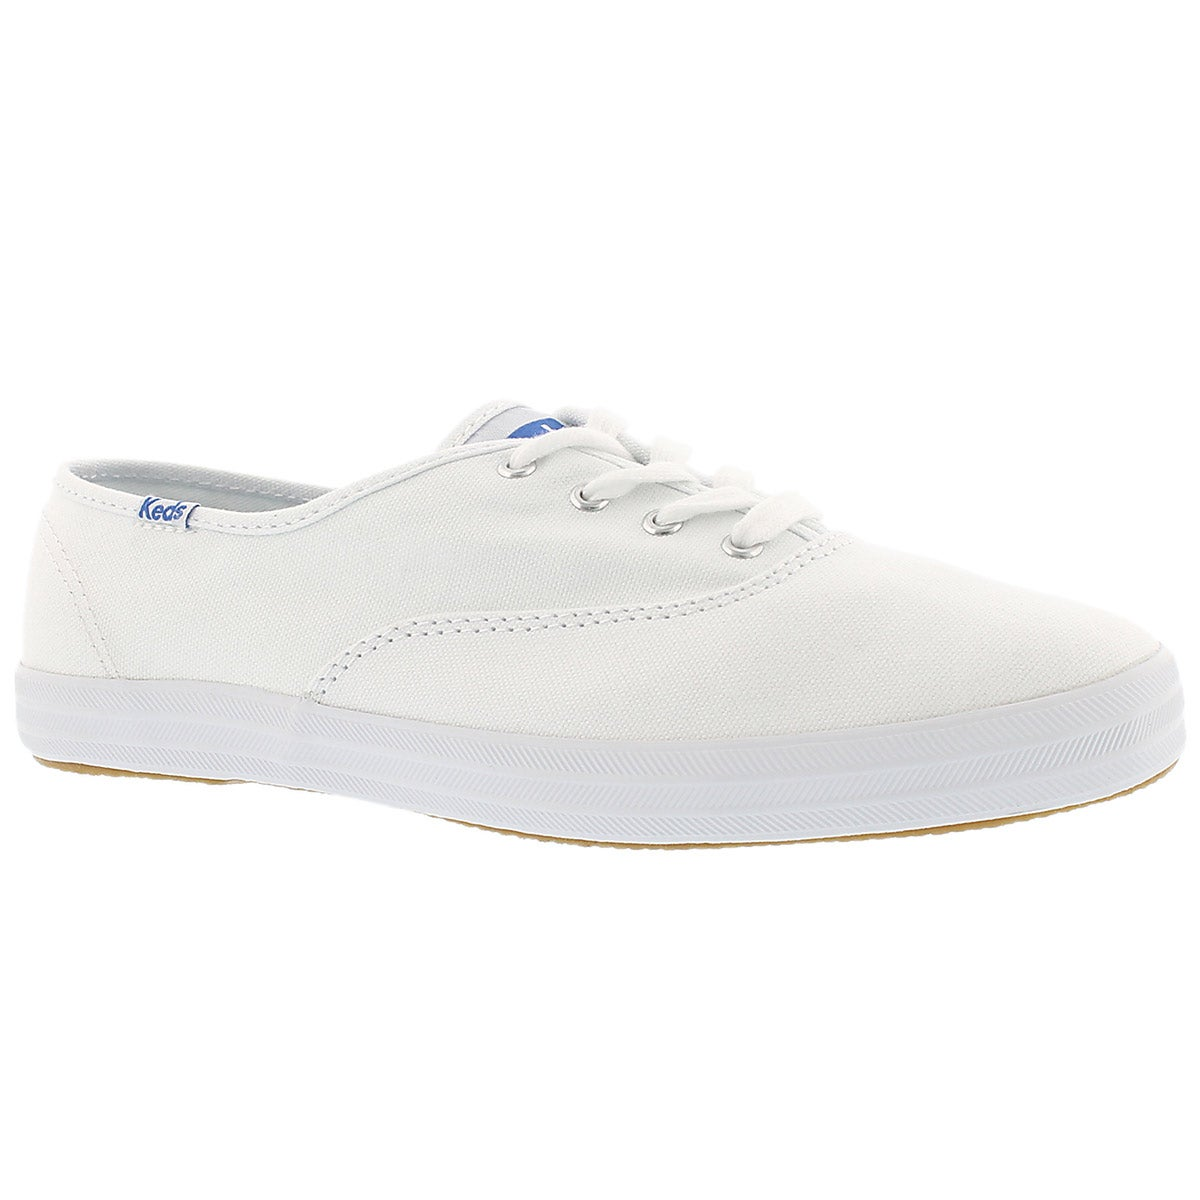 Women's CHAMPION OXFORD white sneakers -Extra Wide